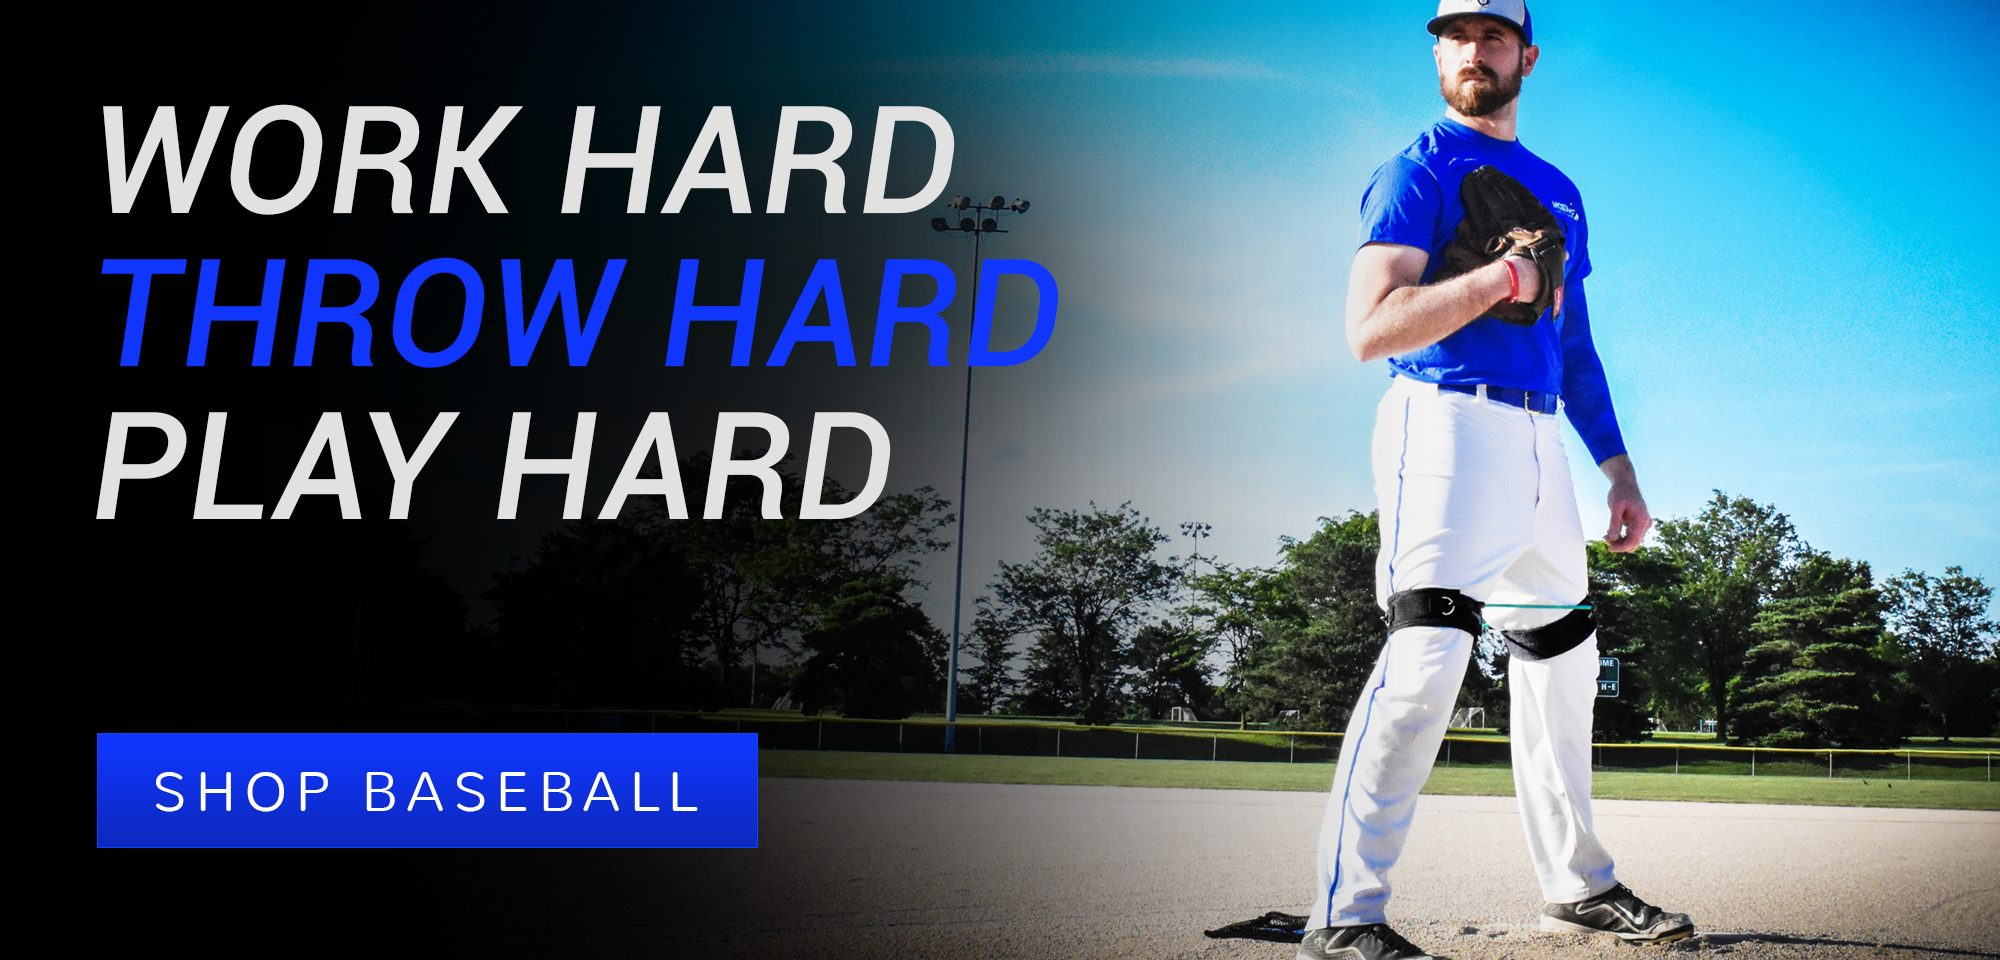 Work Hard, Throw Hard, Play Hard - Shop Baseball and Softball